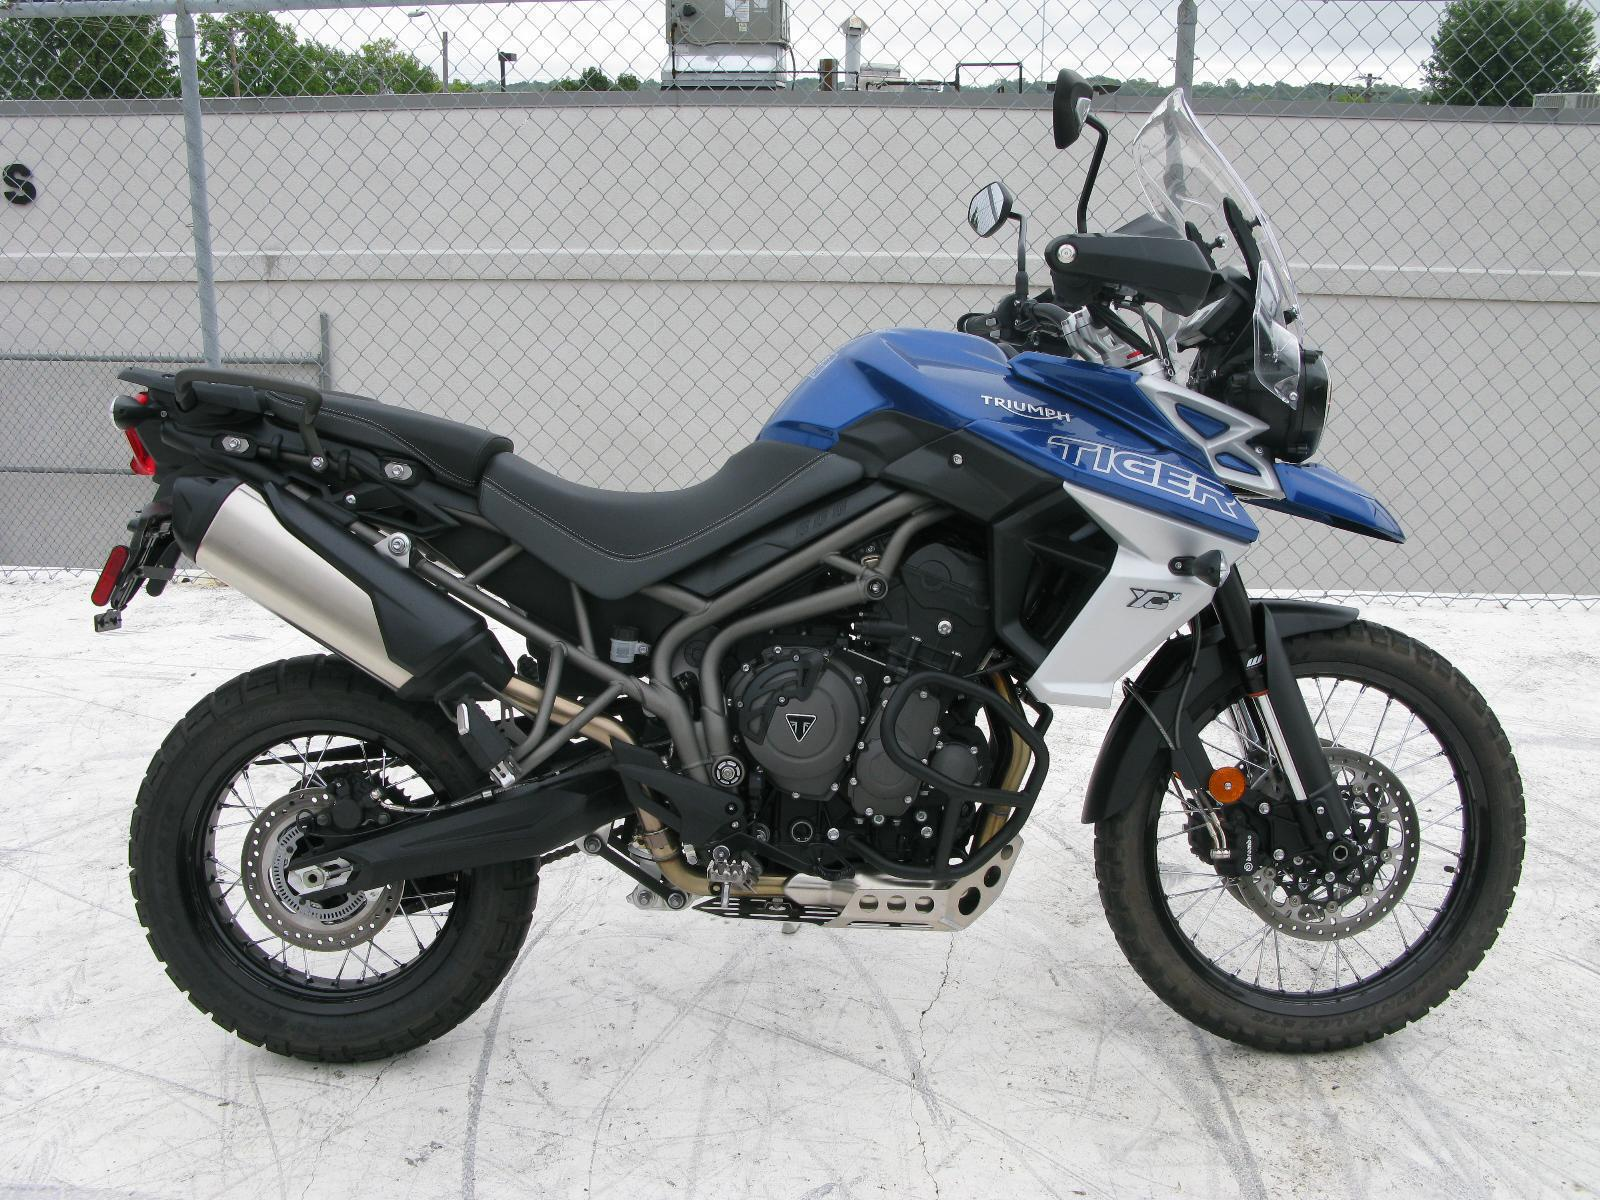 2018 Triumph Tiger 800 Xcx For Sale In Kansas City Mo Engle Motors